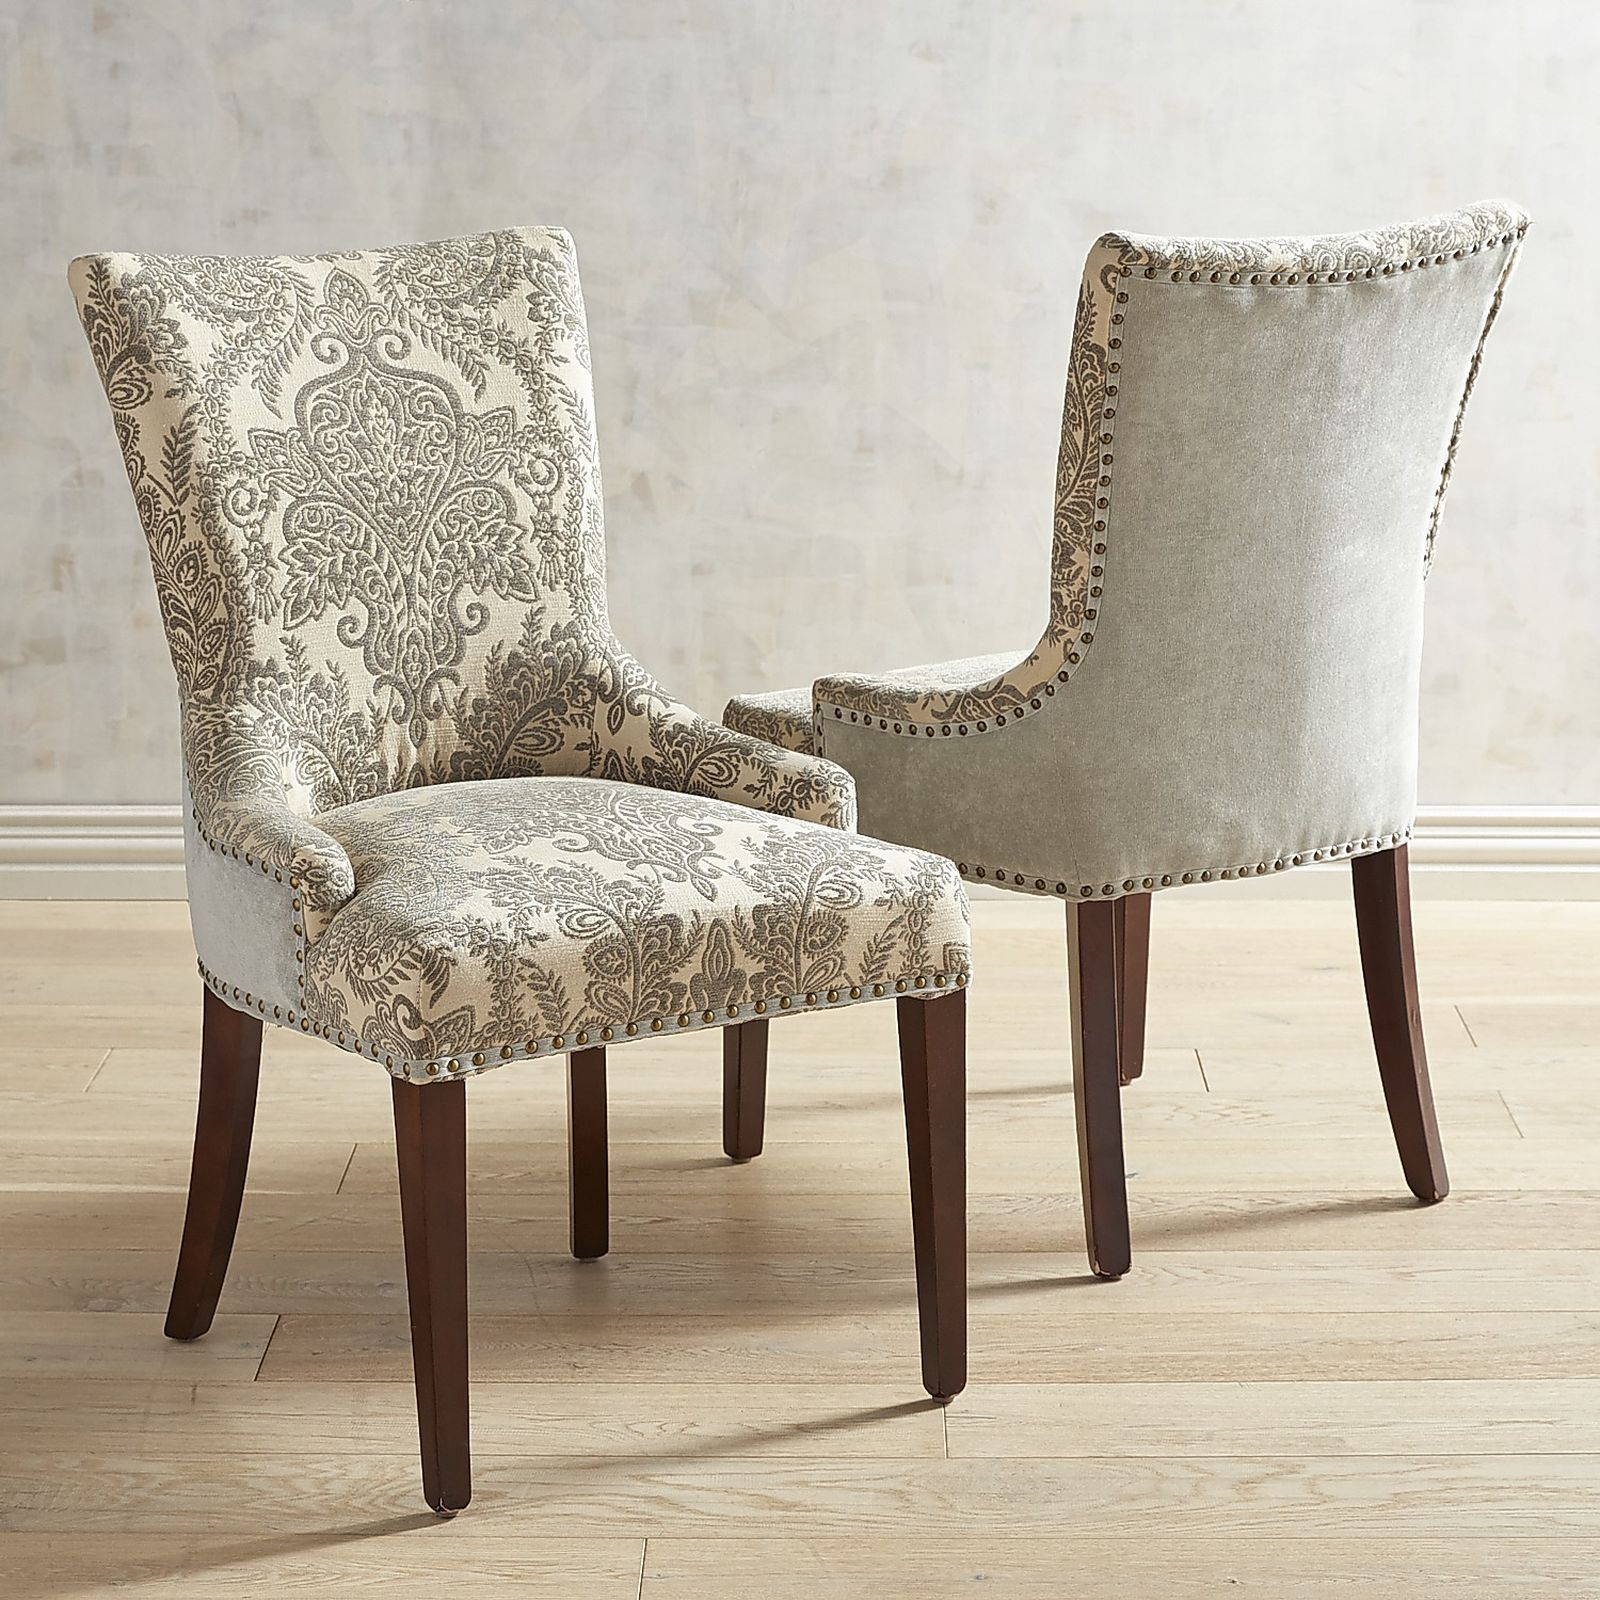 Surprising Our Adelle Dining Chair Packs A Powerful One Two Punch Home Interior And Landscaping Synyenasavecom